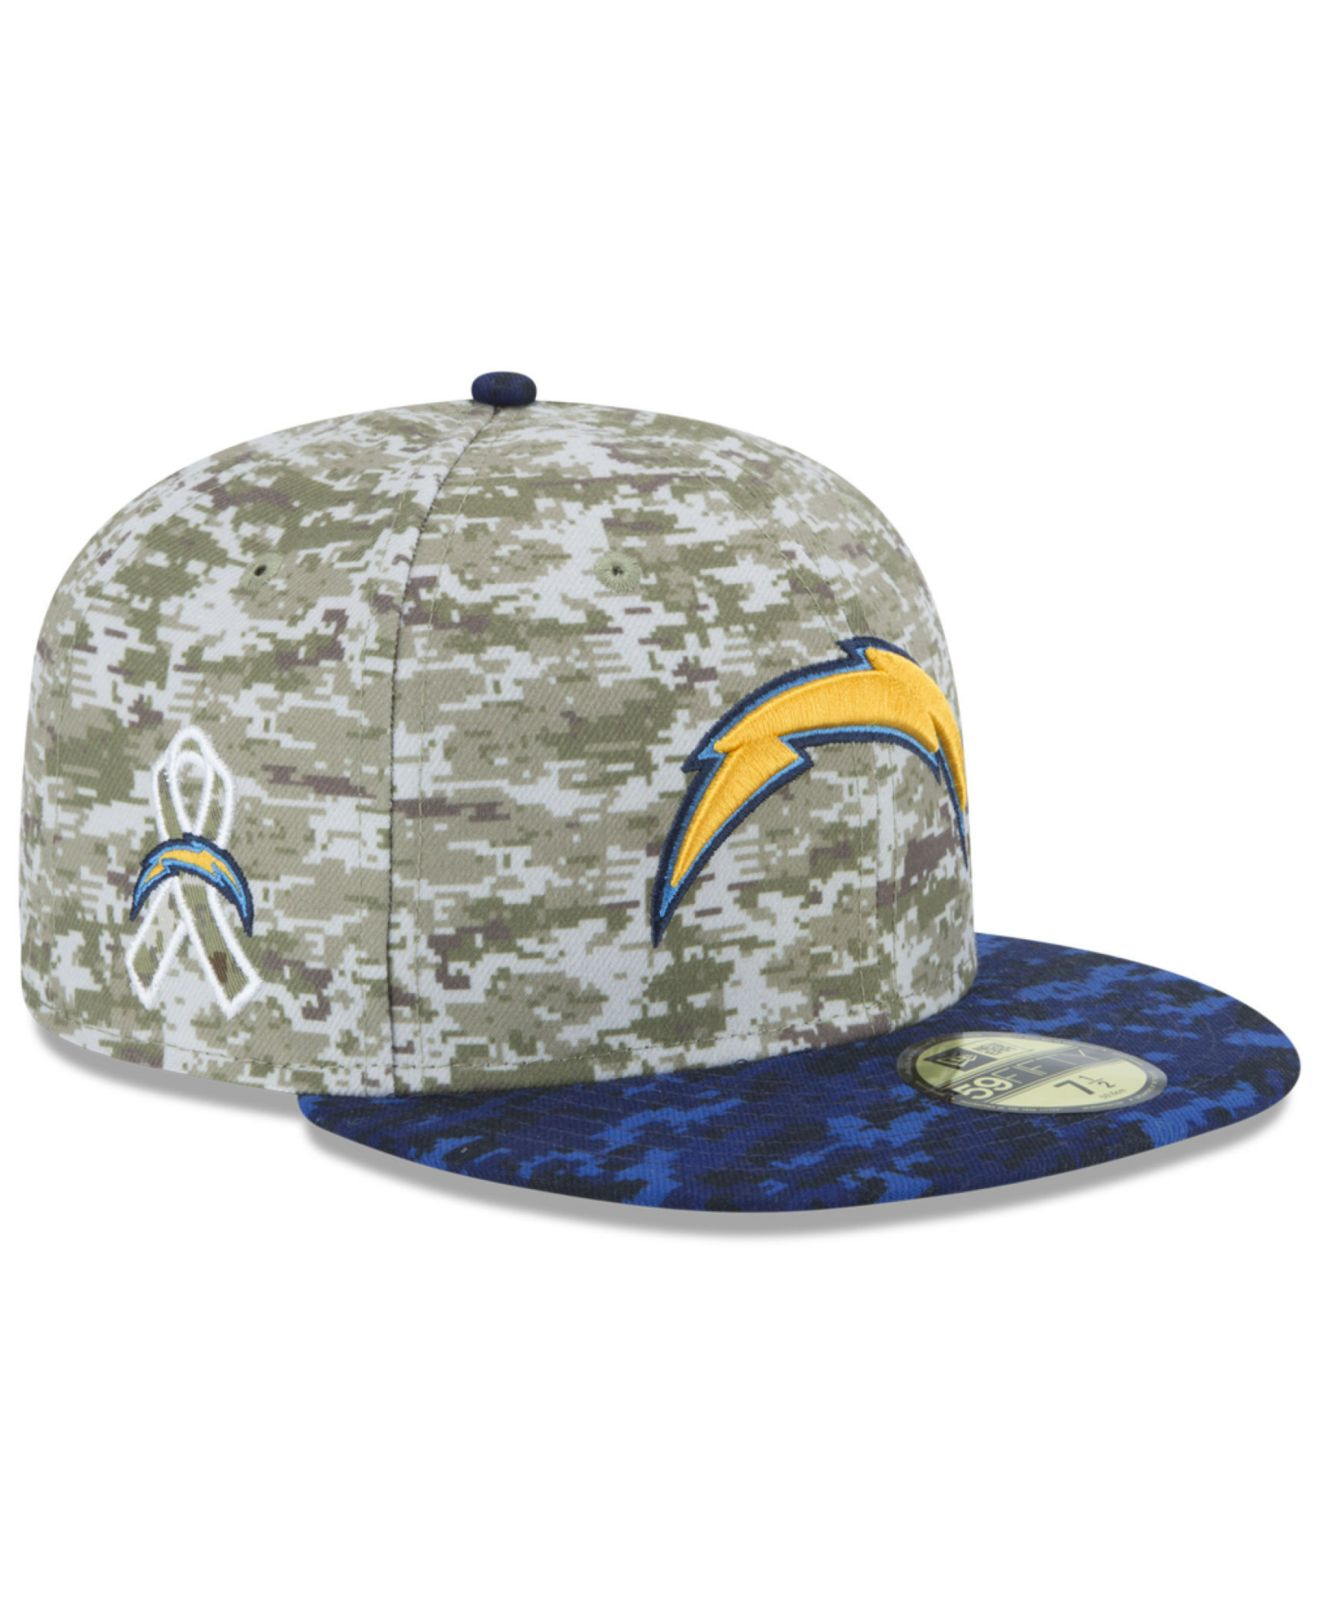 San Diego Chargers Cap: Ktz San Diego Chargers Salute To Service 59fifty